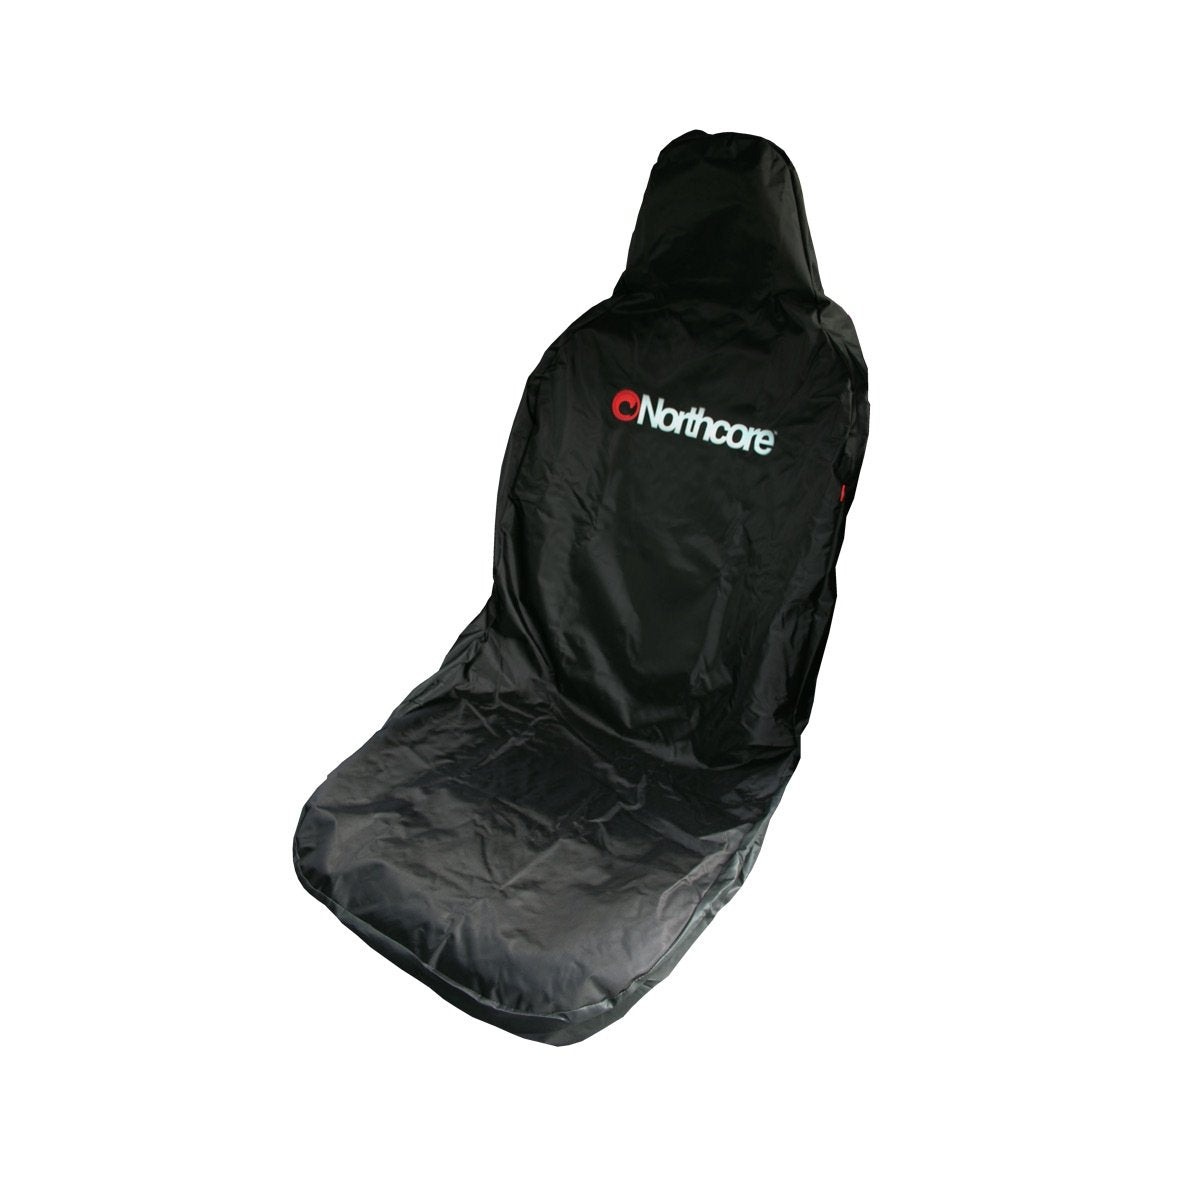 Northcore Waterproof Car Seat Cover Single - Black image